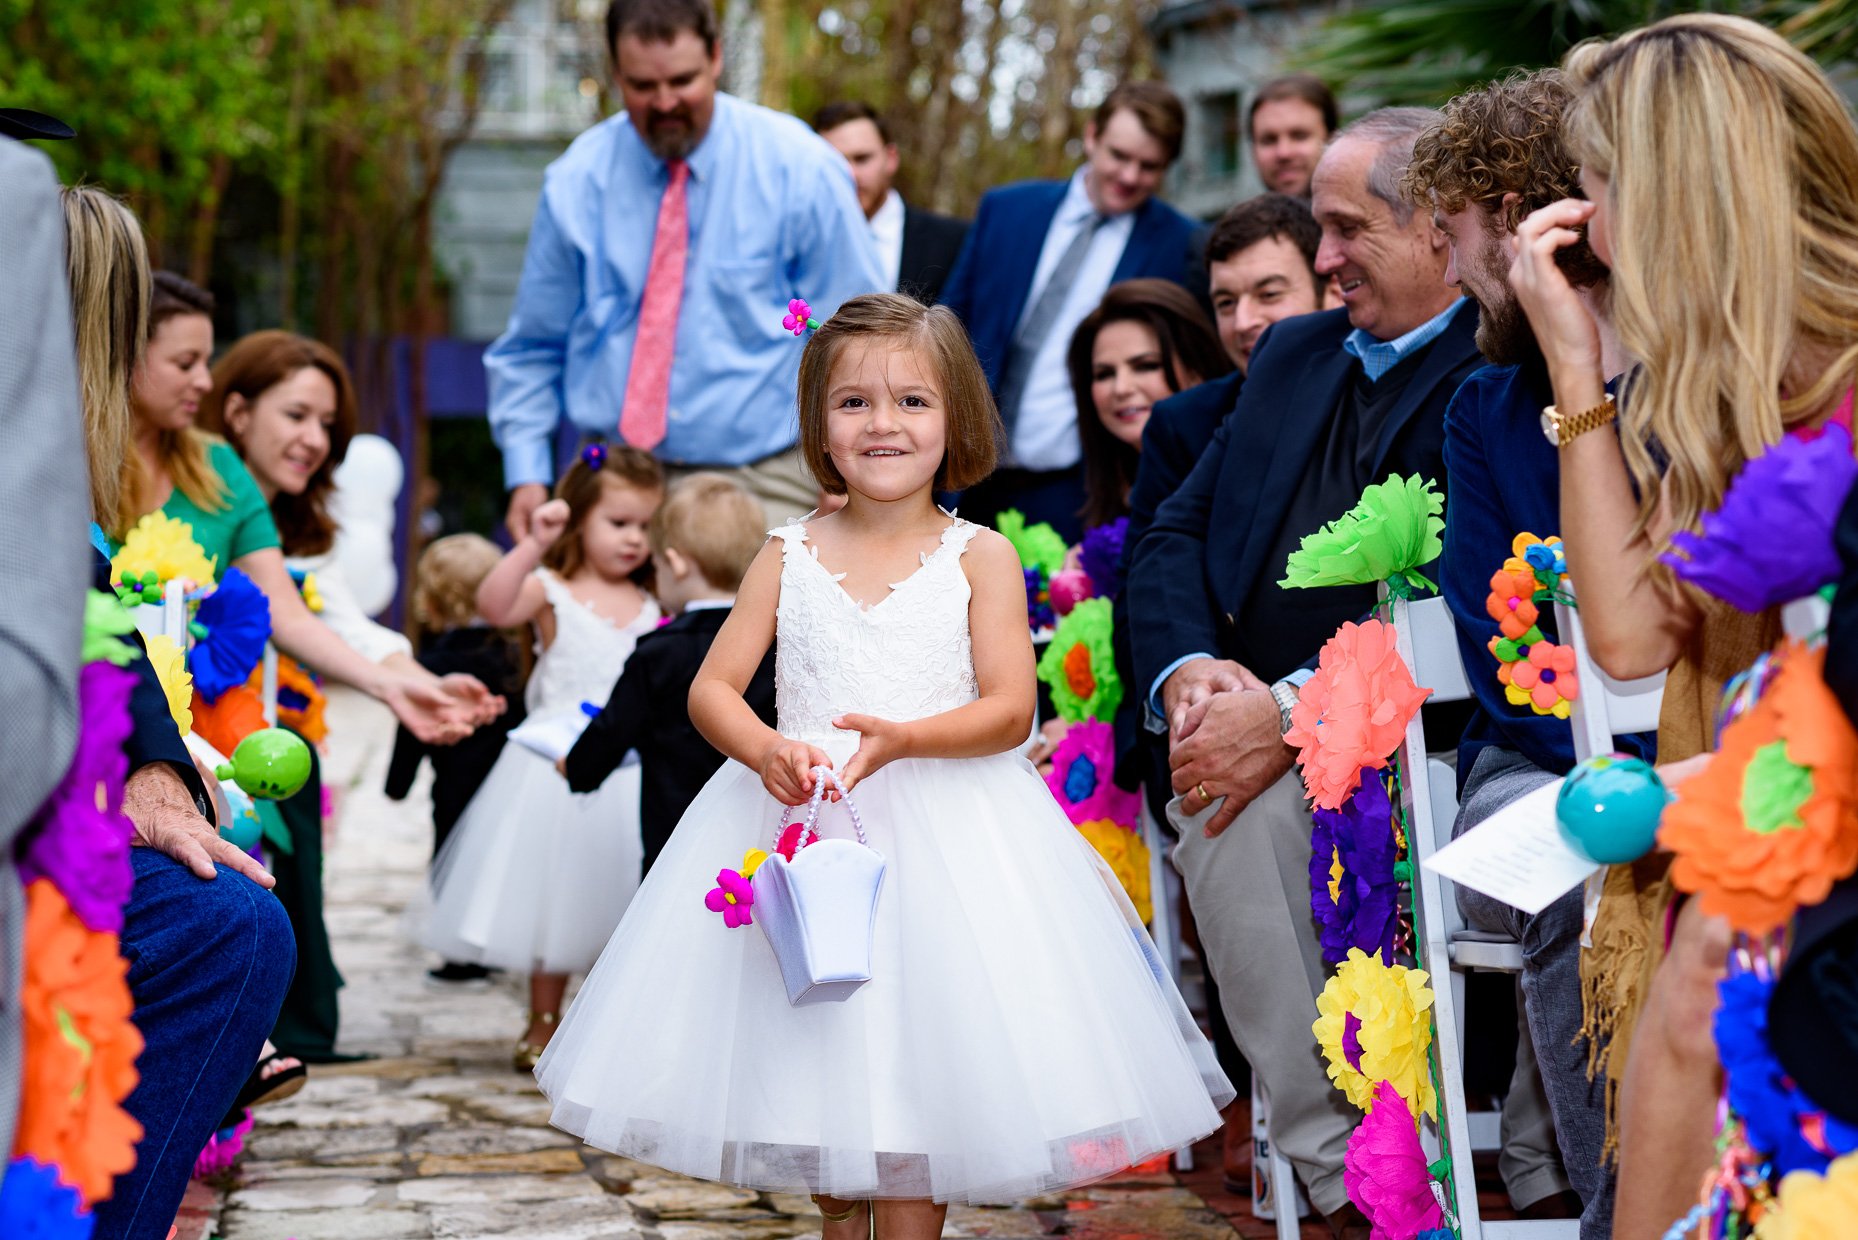 Austin-Wedding-Photographer-ceremony-flower-girl-paper-colorful-zaza-gardens